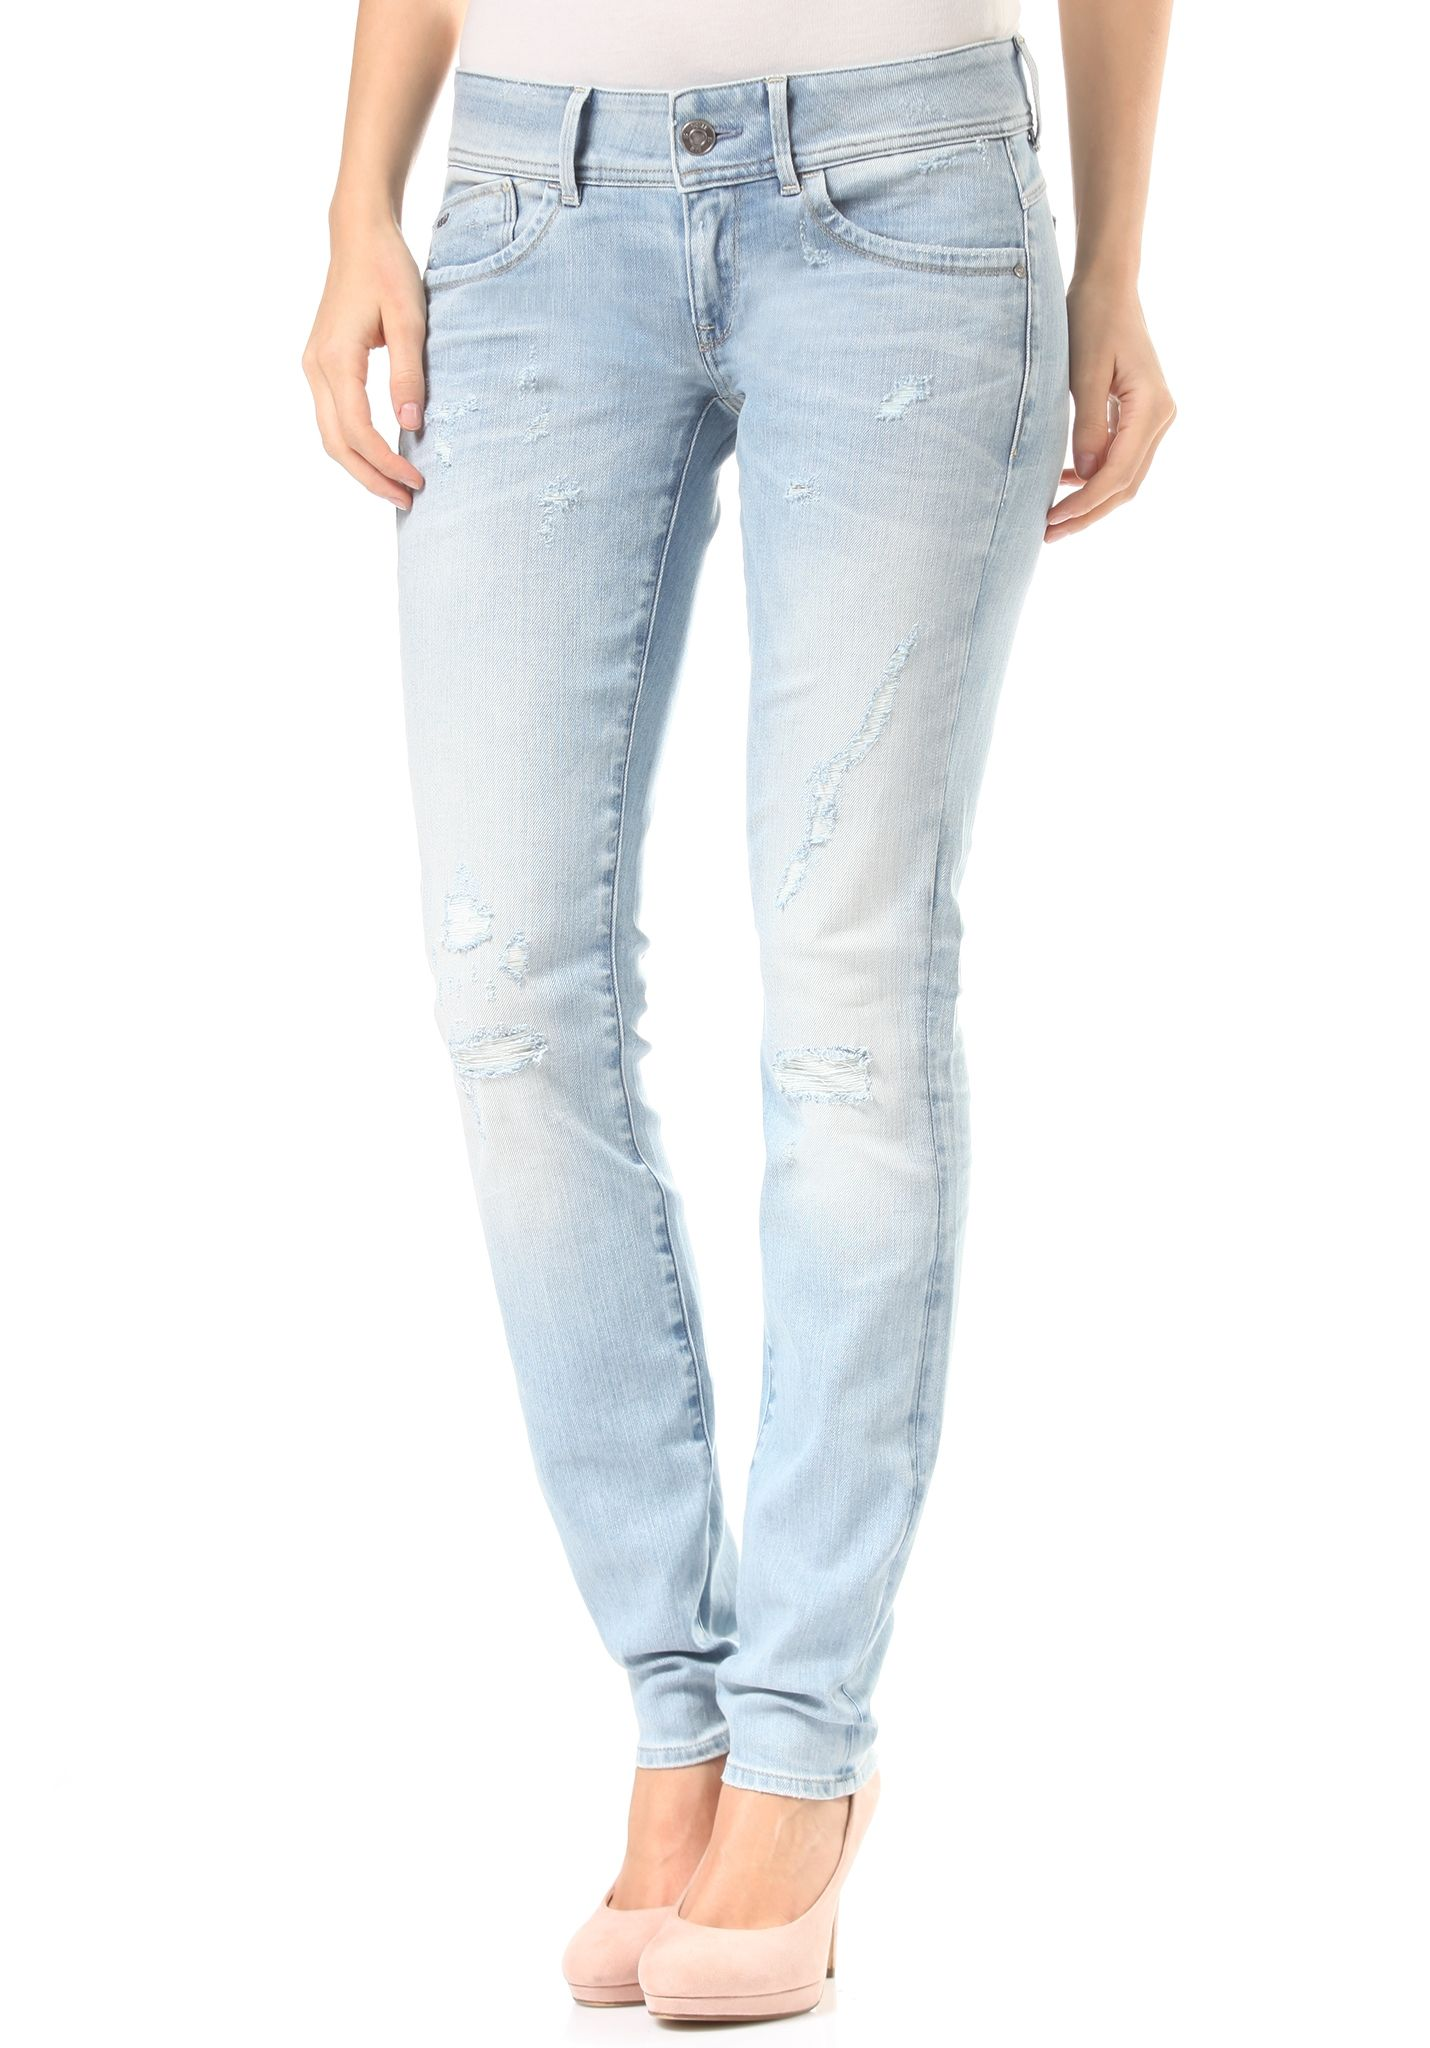 G star raw lynn zip skinny superstretch jeans